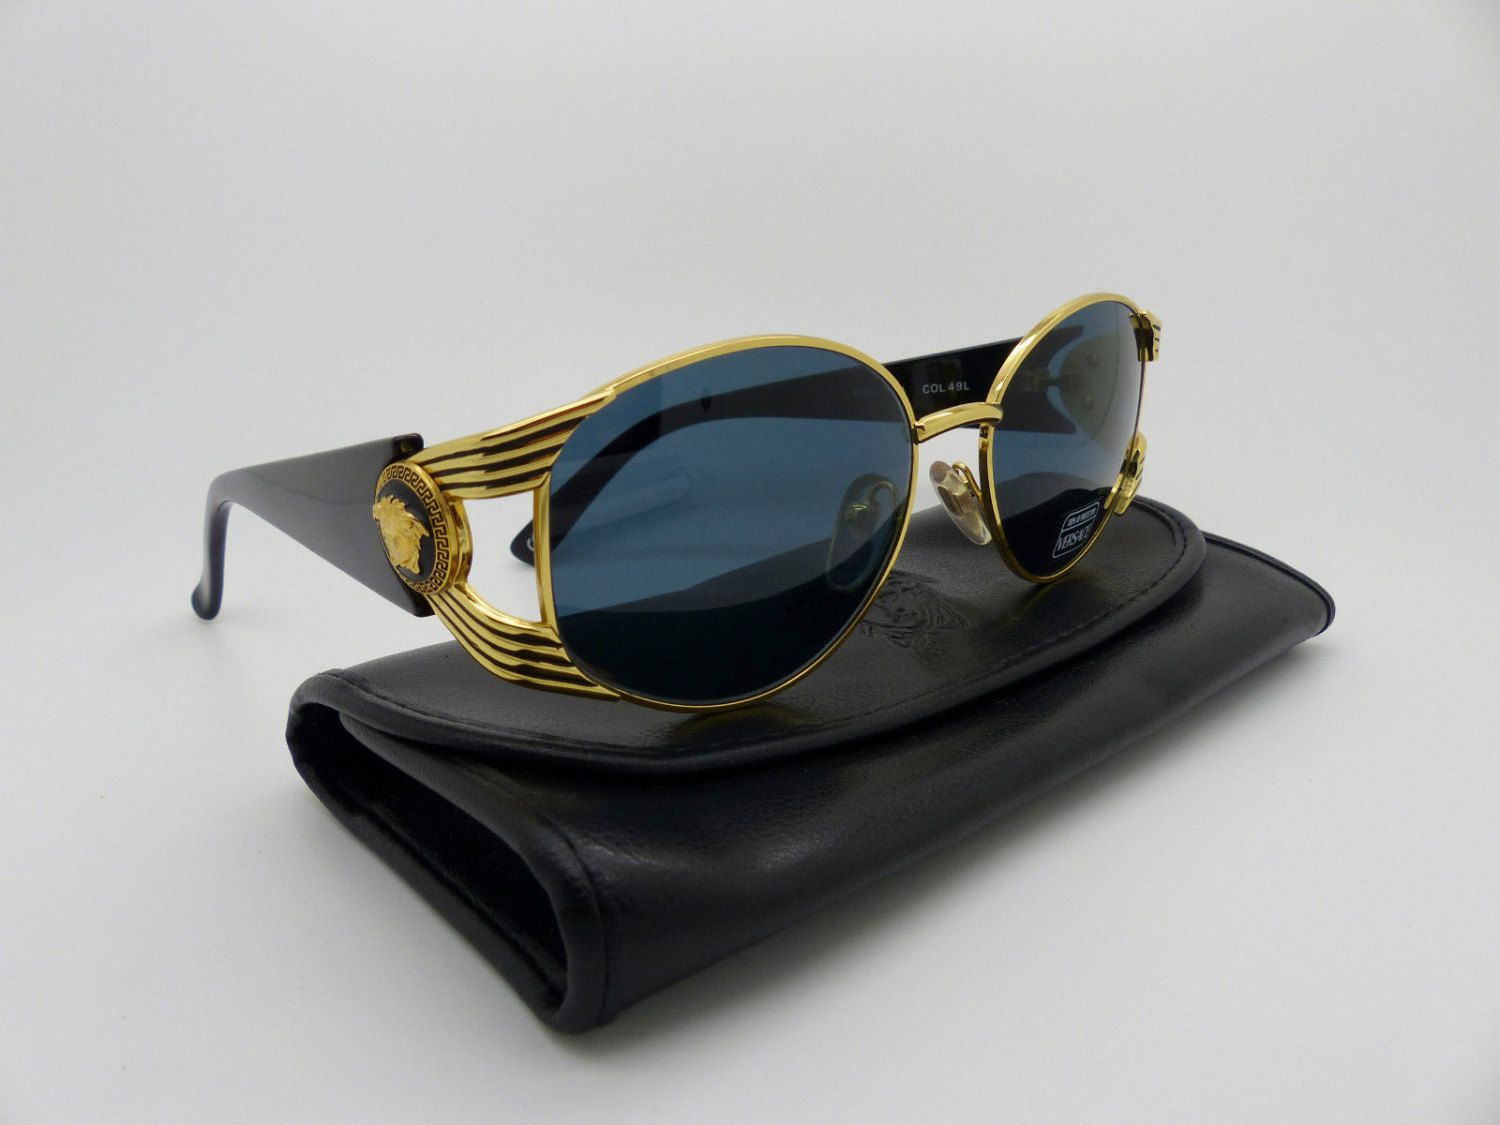 ab82a700a66e Rare Vintage Gianni Versace Sunglasses Mod S64 Col 49L by VSOx on Etsy